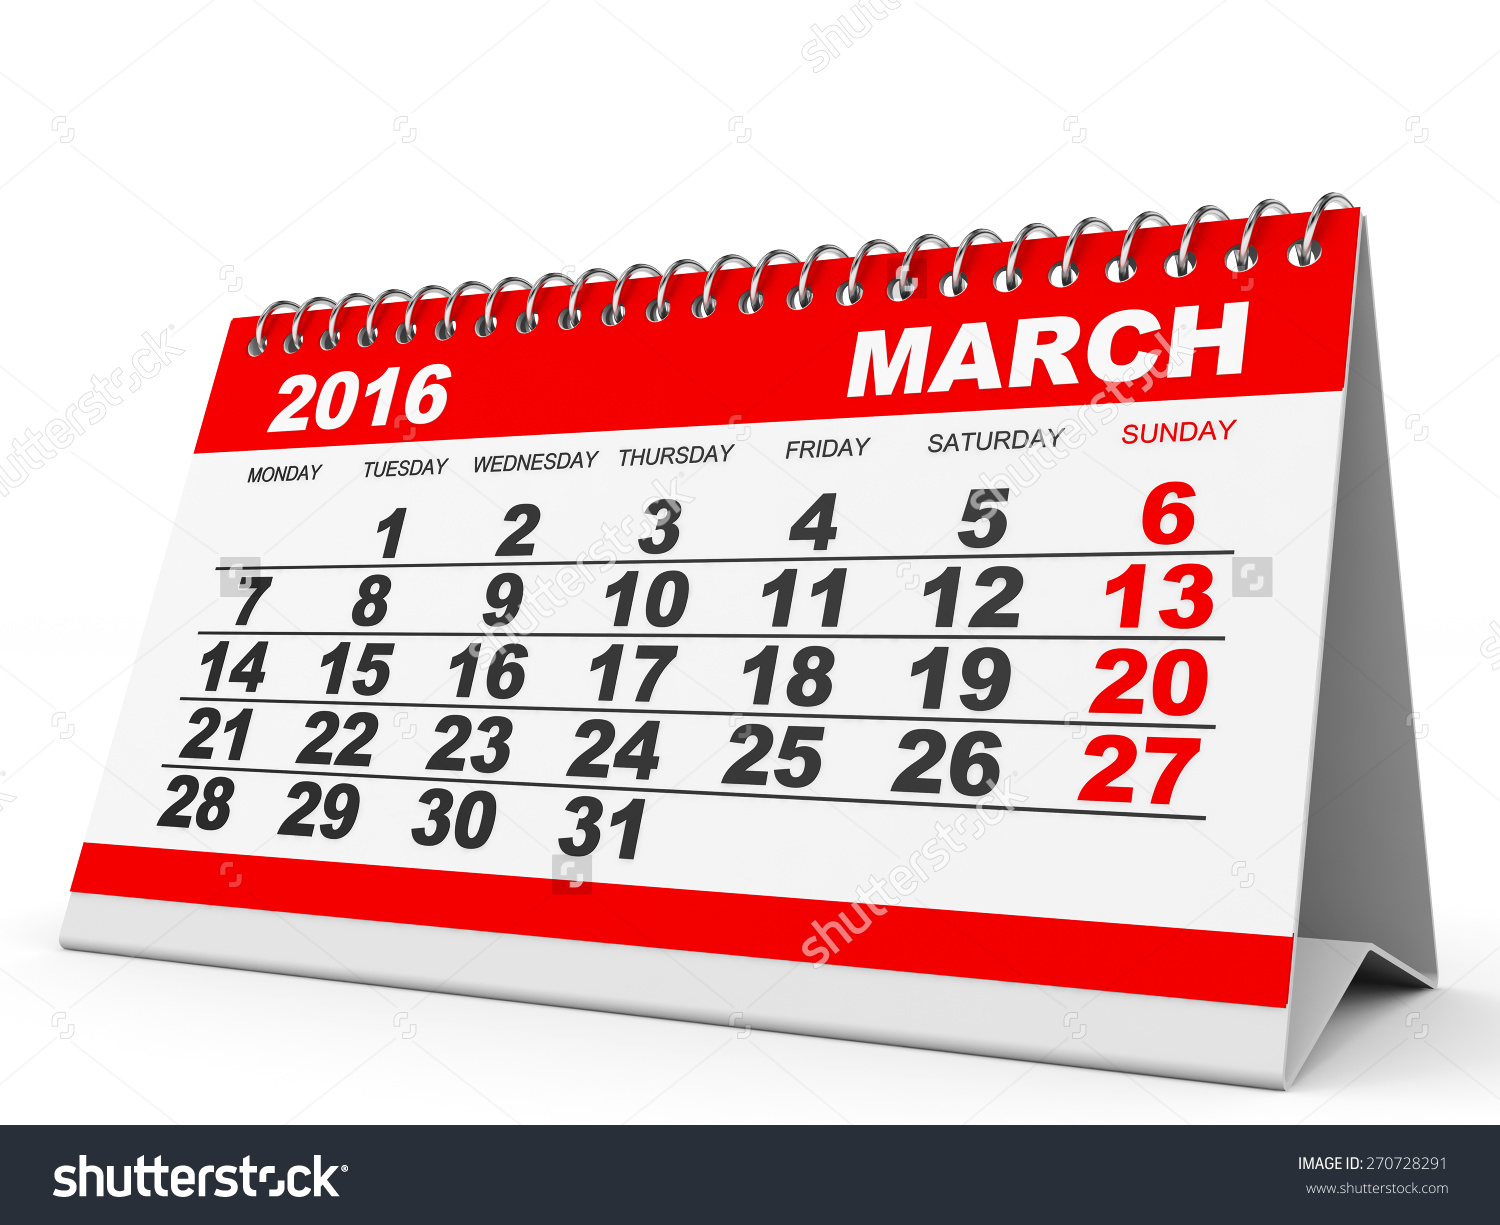 March 2016 calendar clipart picture free stock Calendar March 2016 On White Background. 3d Illustration ... picture free stock